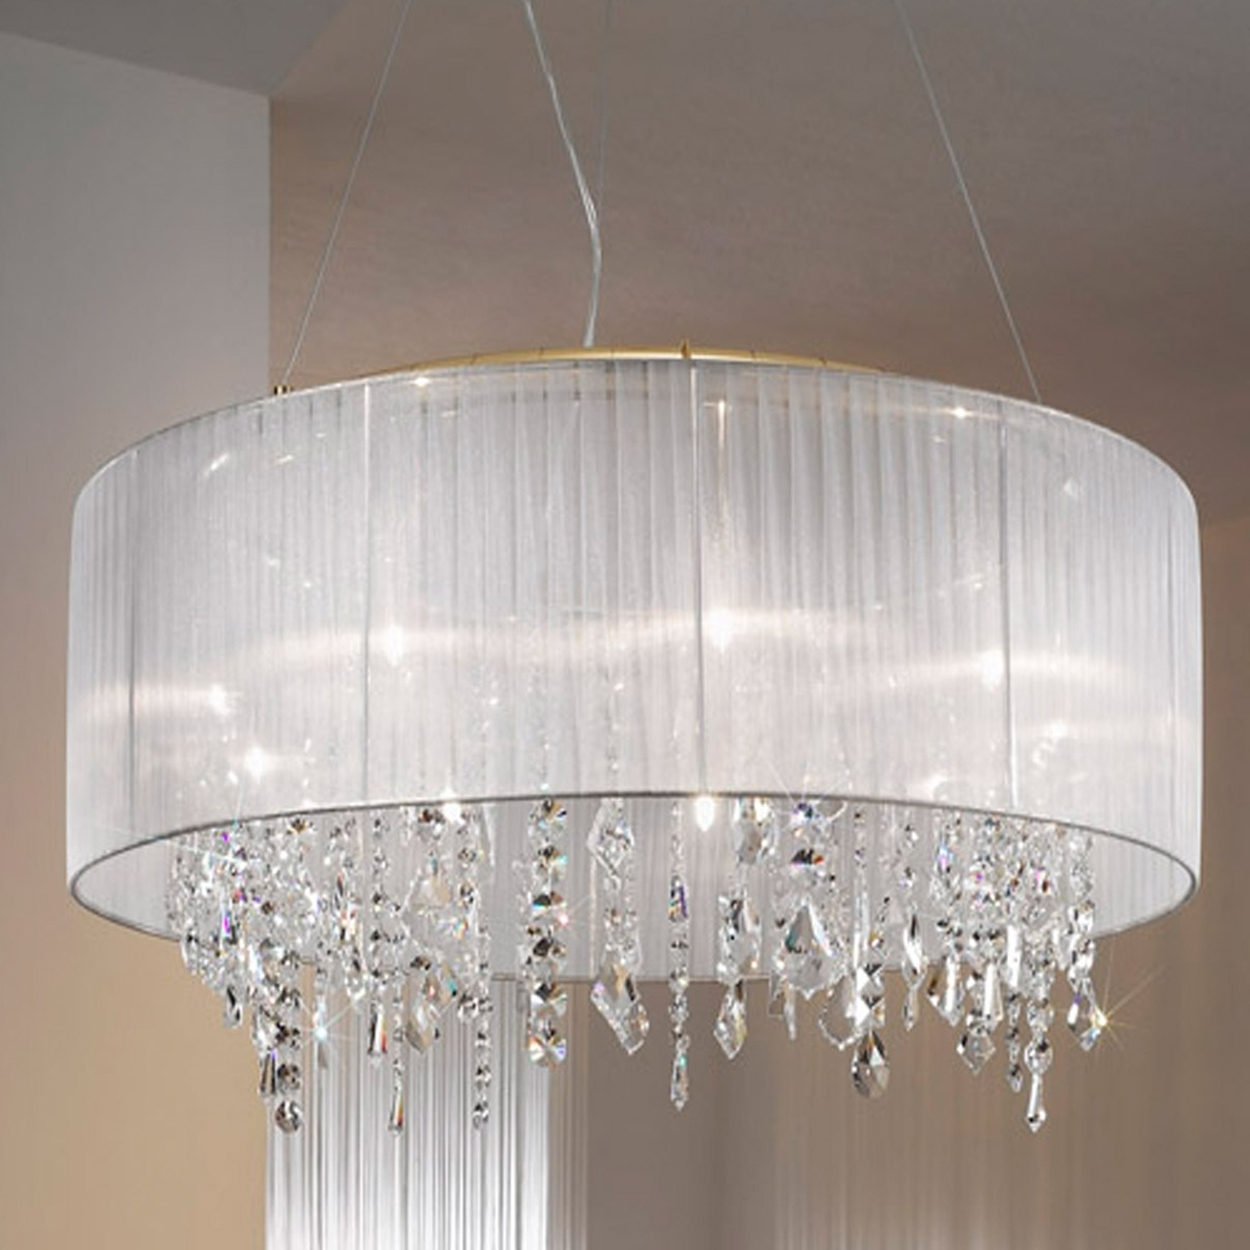 Favorite Chandelier Light Shades In Chandelier Lamp Shades With Crystals : Furniture Decor Trend – Best (View 12 of 20)